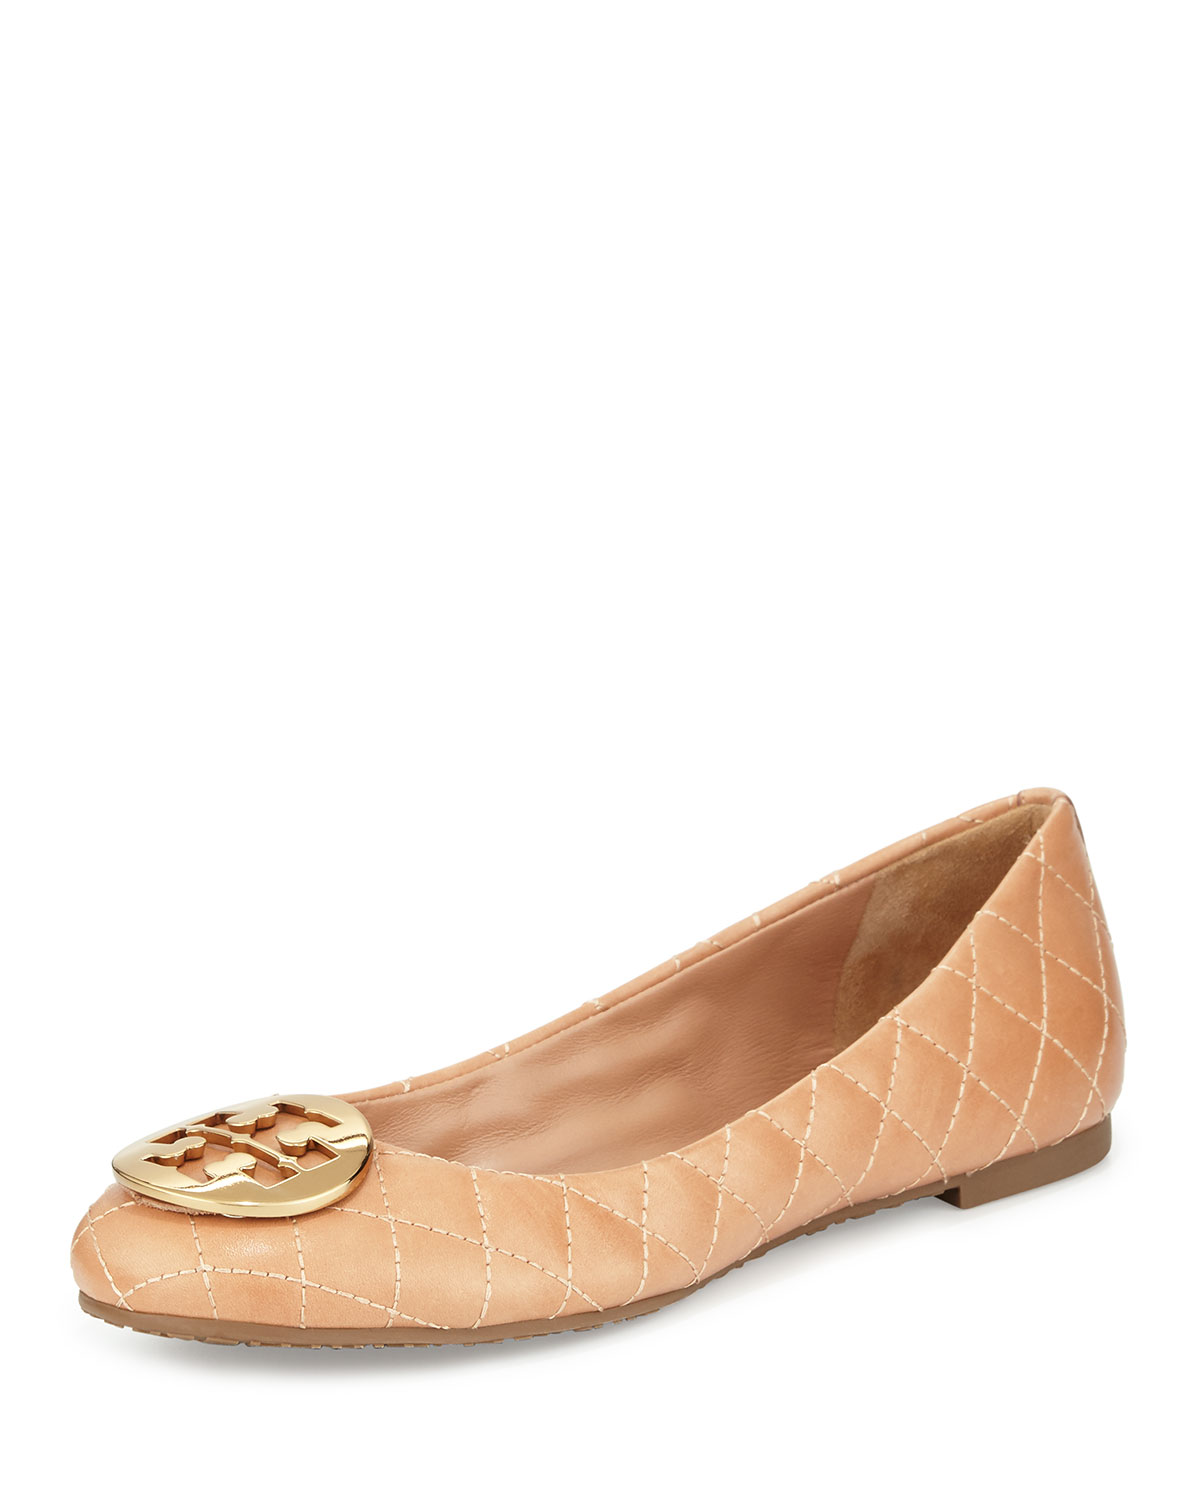 4be691bc1347 Tory Burch Quinn Quilted Ballet Flat